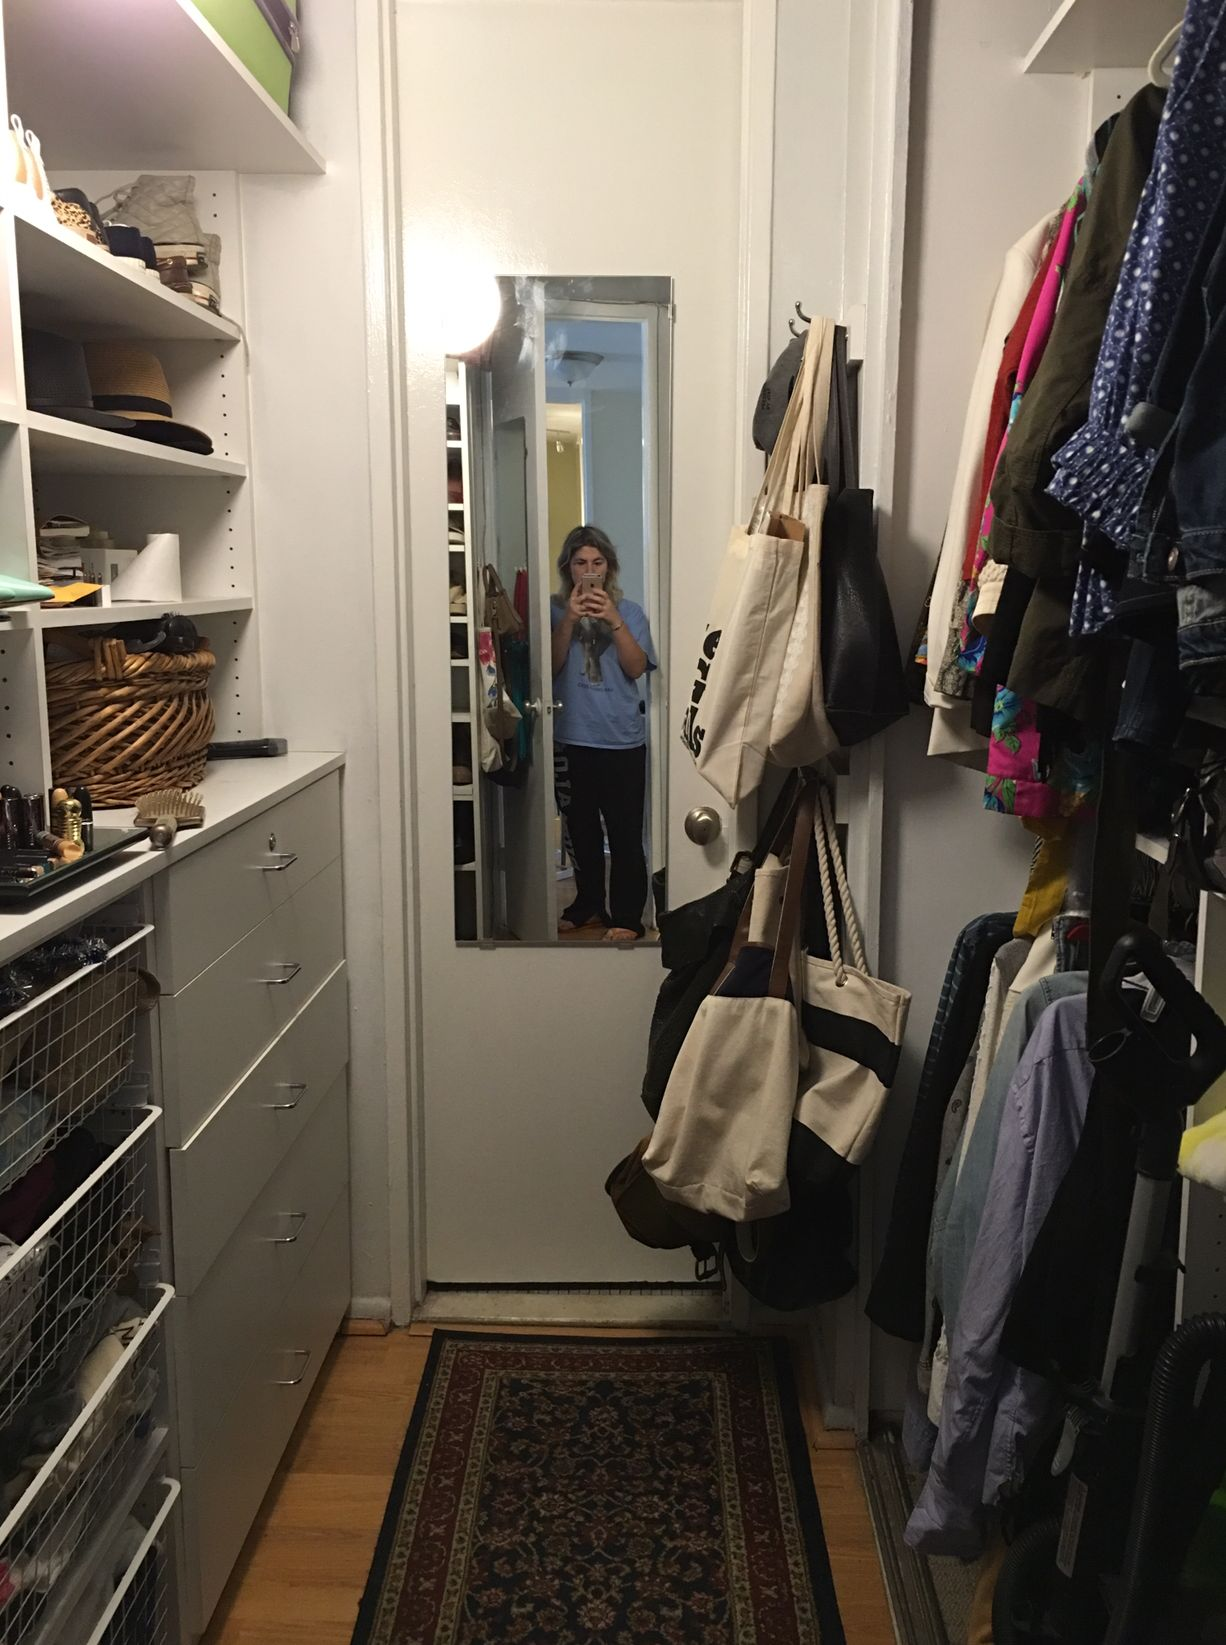 The author in her closet in 2016. Notice the amount of tote bags.